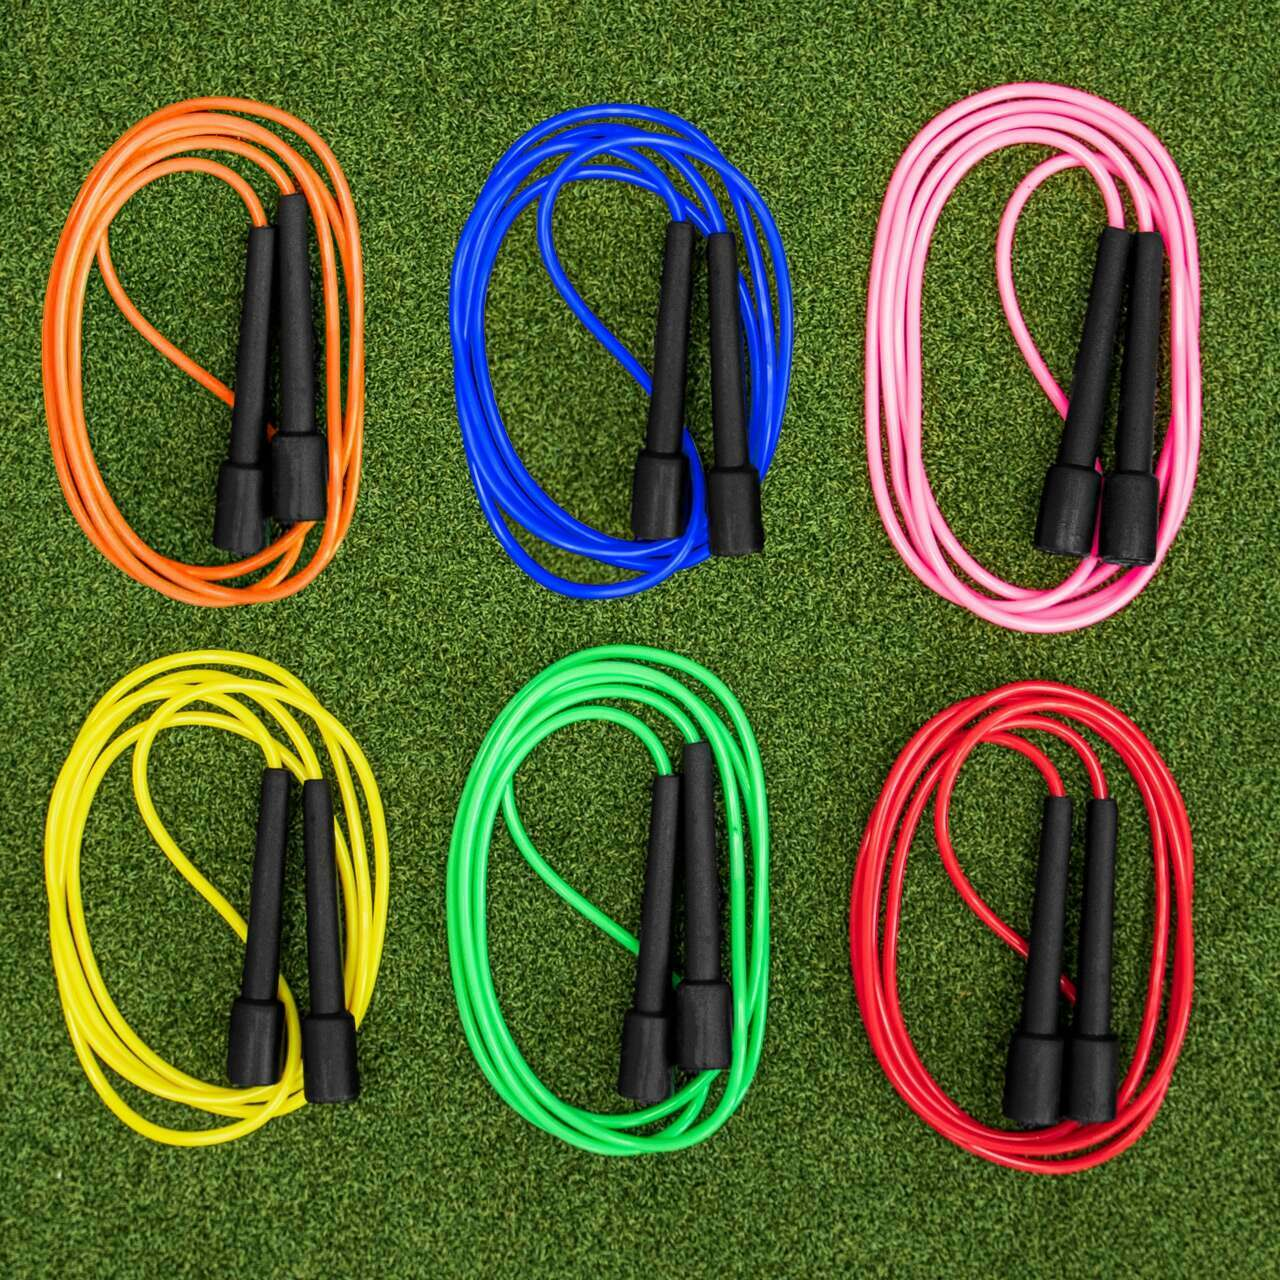 Plastic Skipping Ropes [Pack of 6]